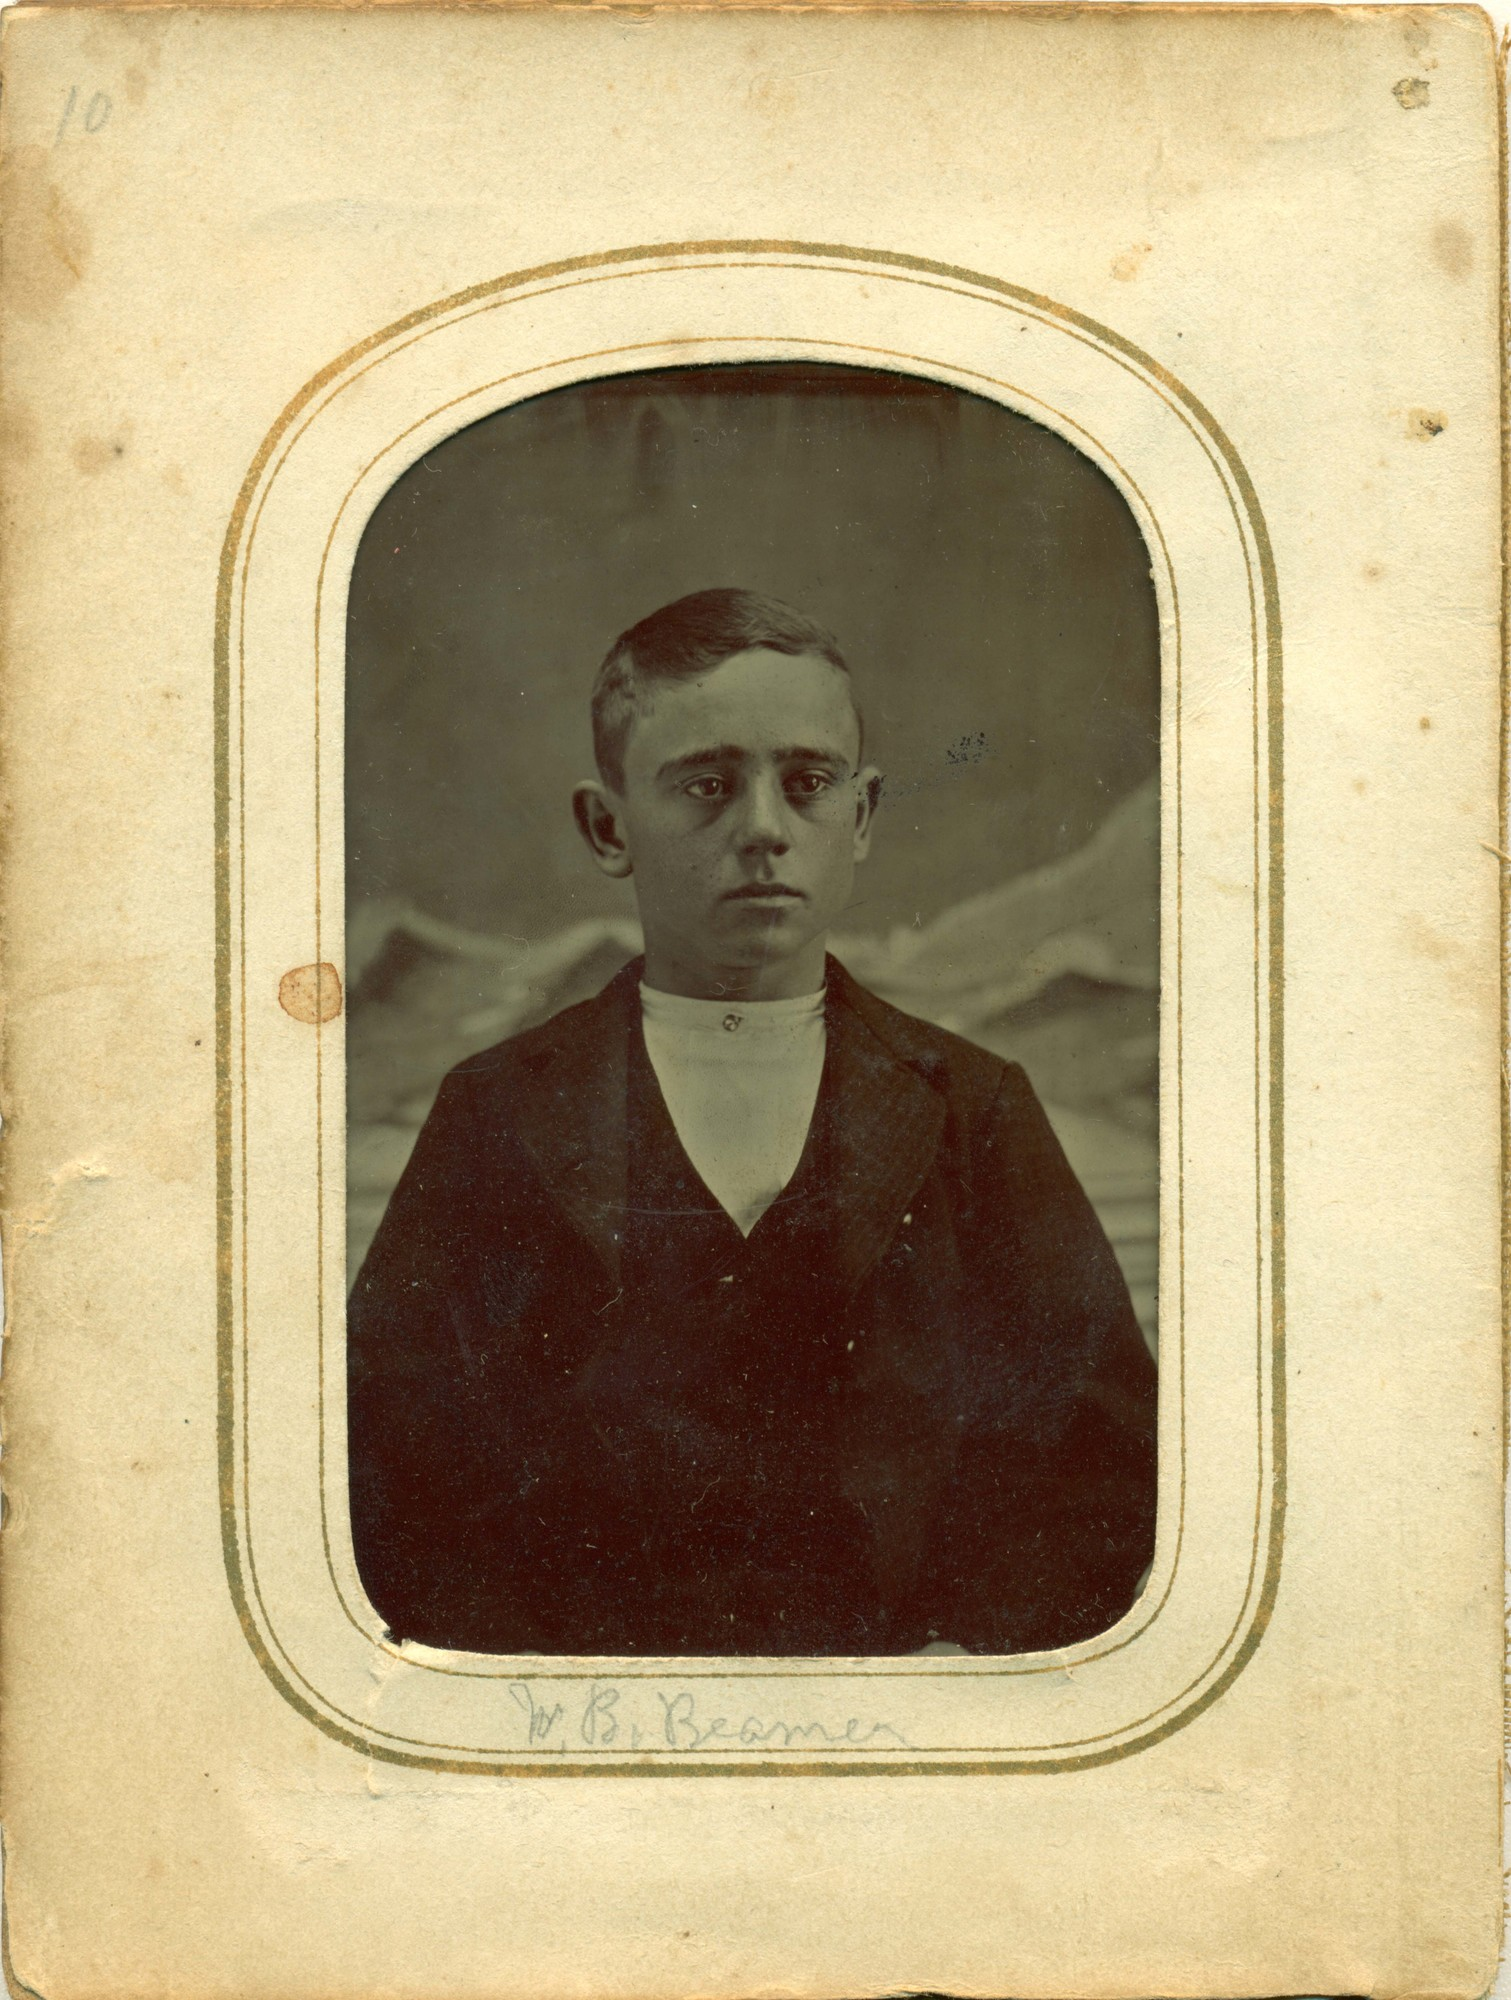 William Benjamin Beamer 1 Framed.jpg